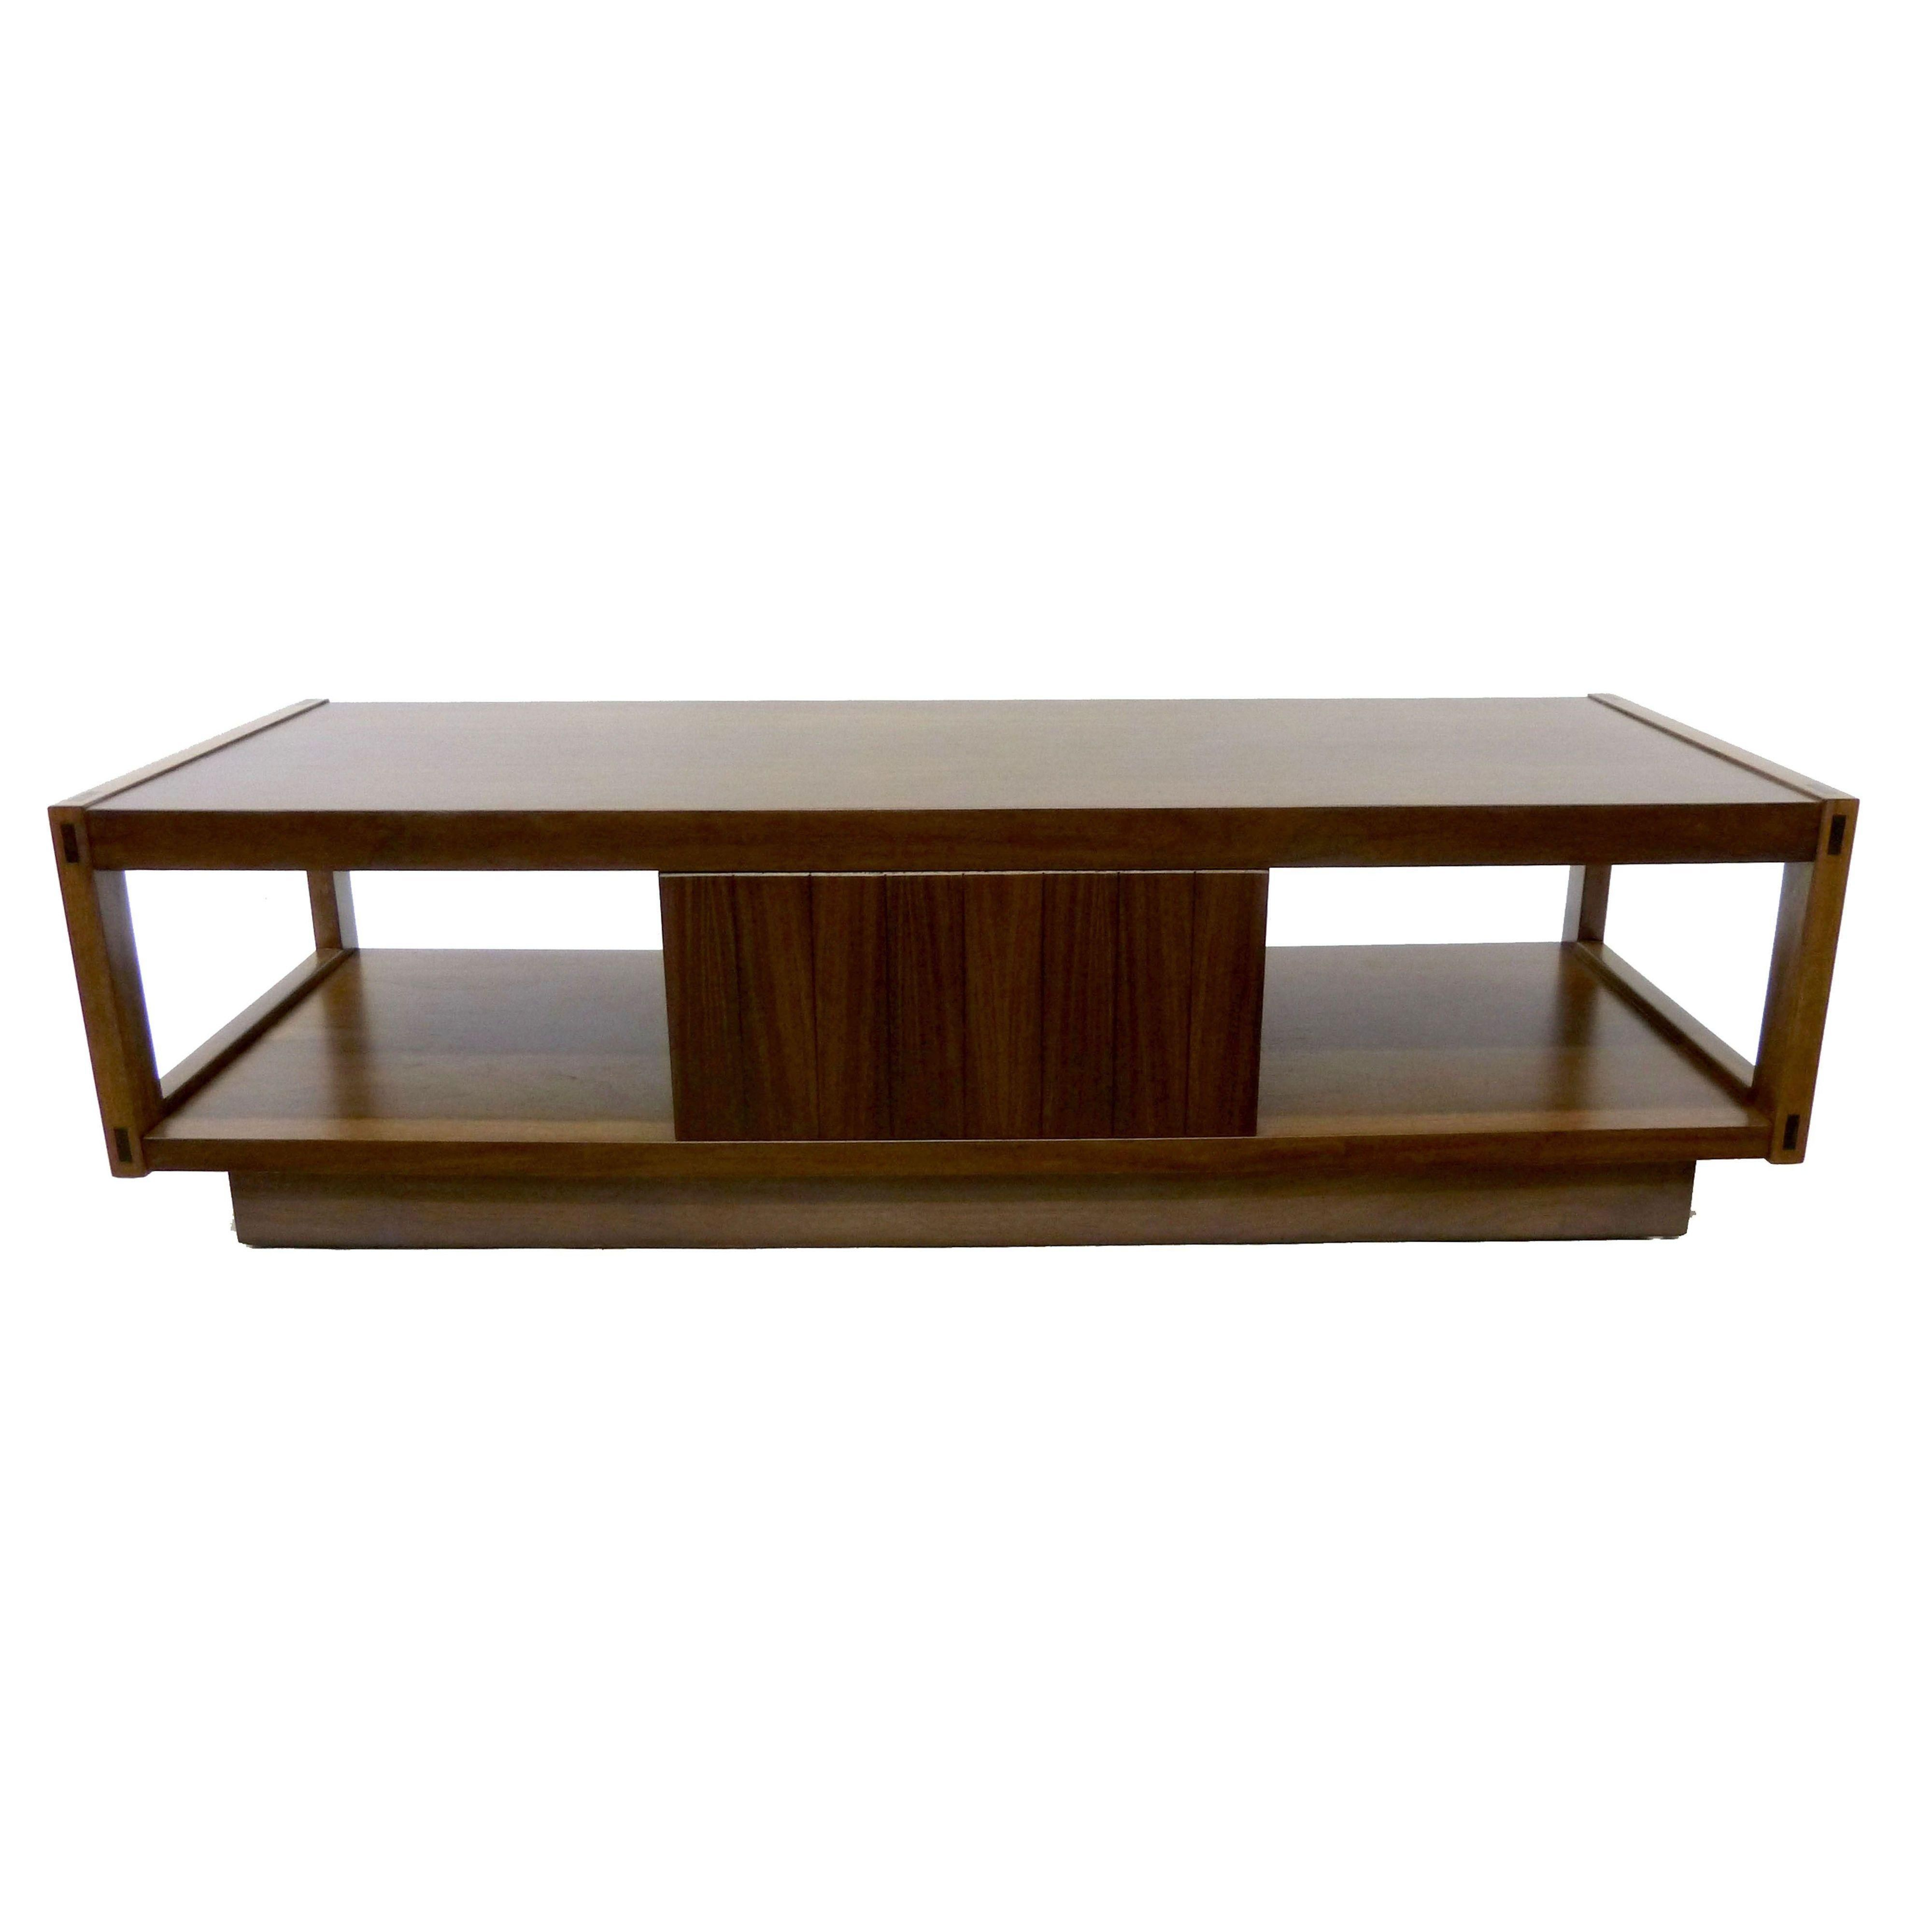 This highly structured, mid-century modern coffee table by Lane is rendered in walnut and brass and features plenty of storage including a large center drawer flanked by two open shelves ideal for the display of magazines and books. The piece's modern lines are juxtaposed with traditional joinery at the corners highlighted by lighter shades of walnut. The coffee table rests on an inverted base also in walnut. Lane logo is branded inside drawer.